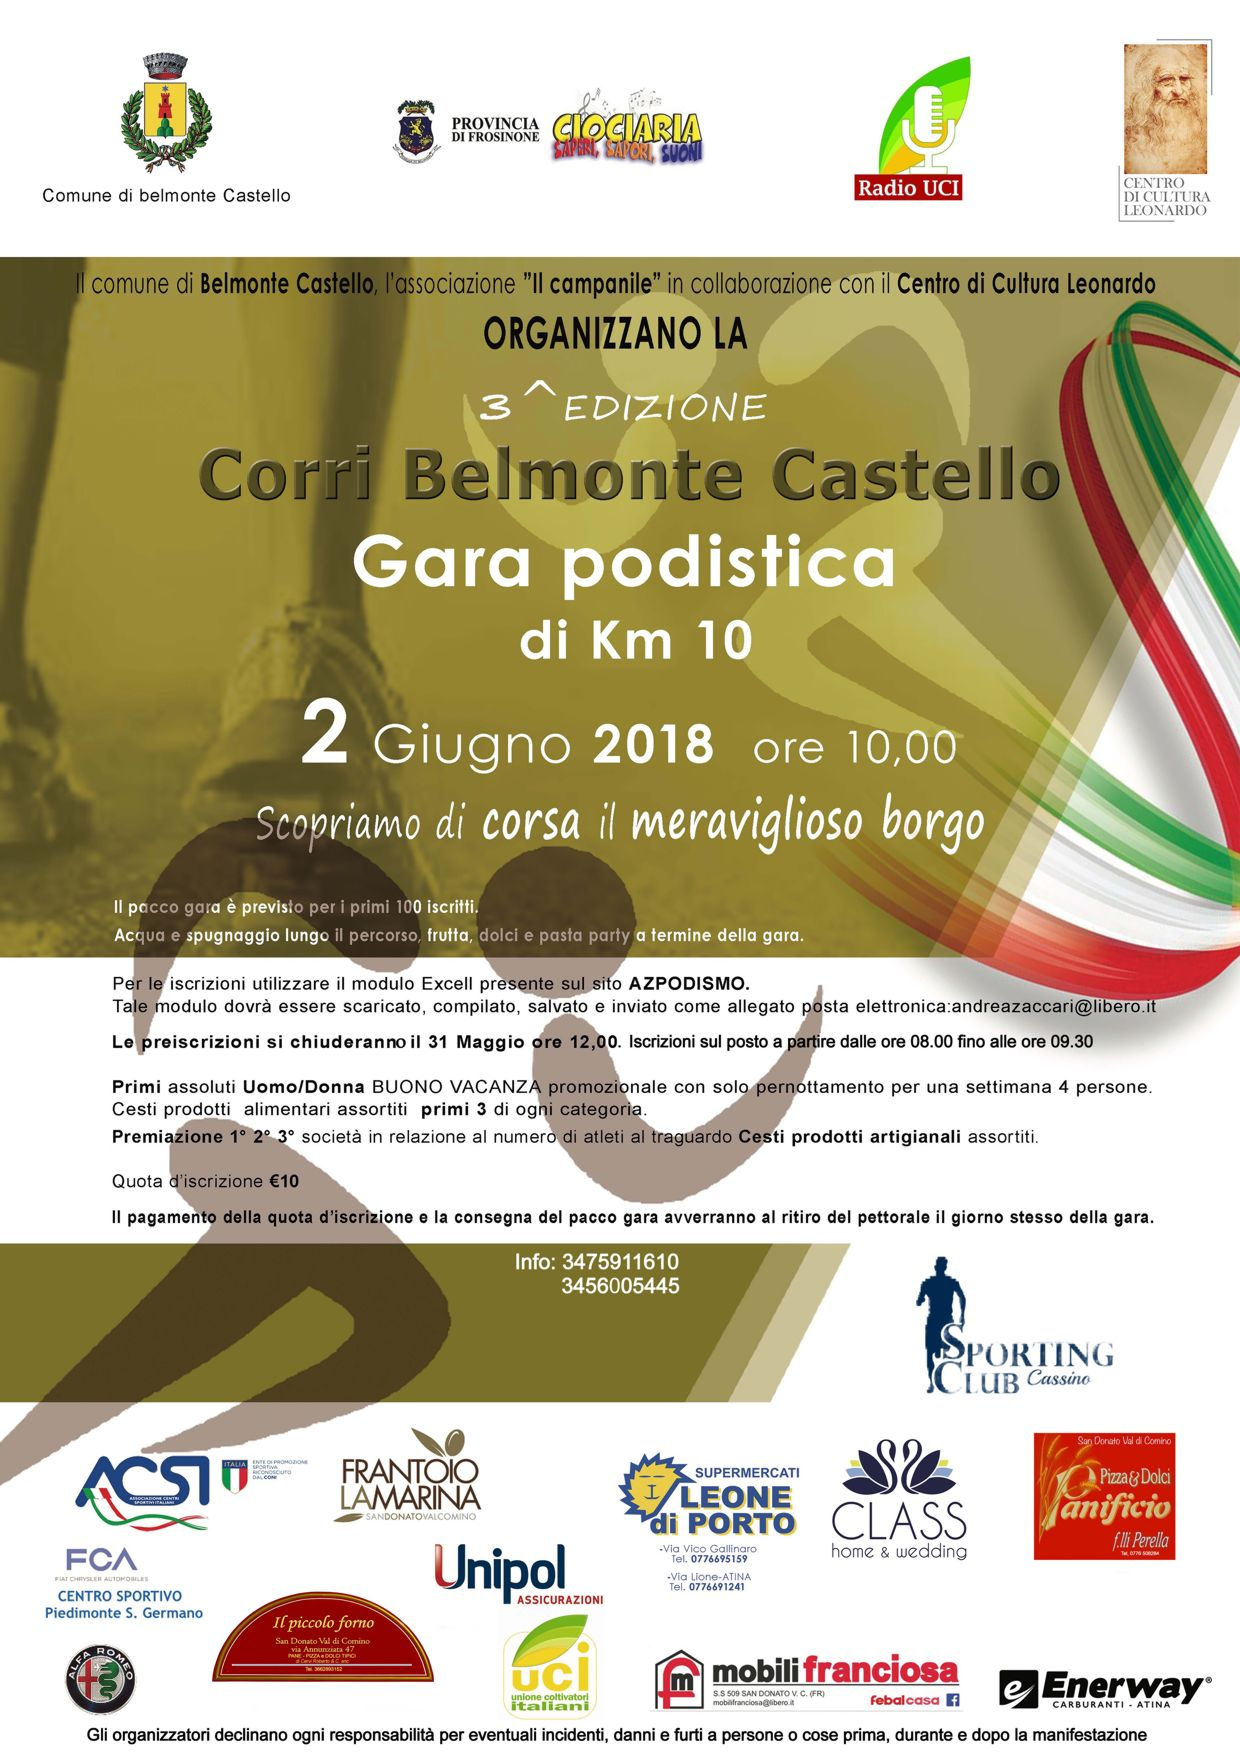 Calendario Podismo Lazio.Gestione Gare Podistiche Classifiche Calendario Gare